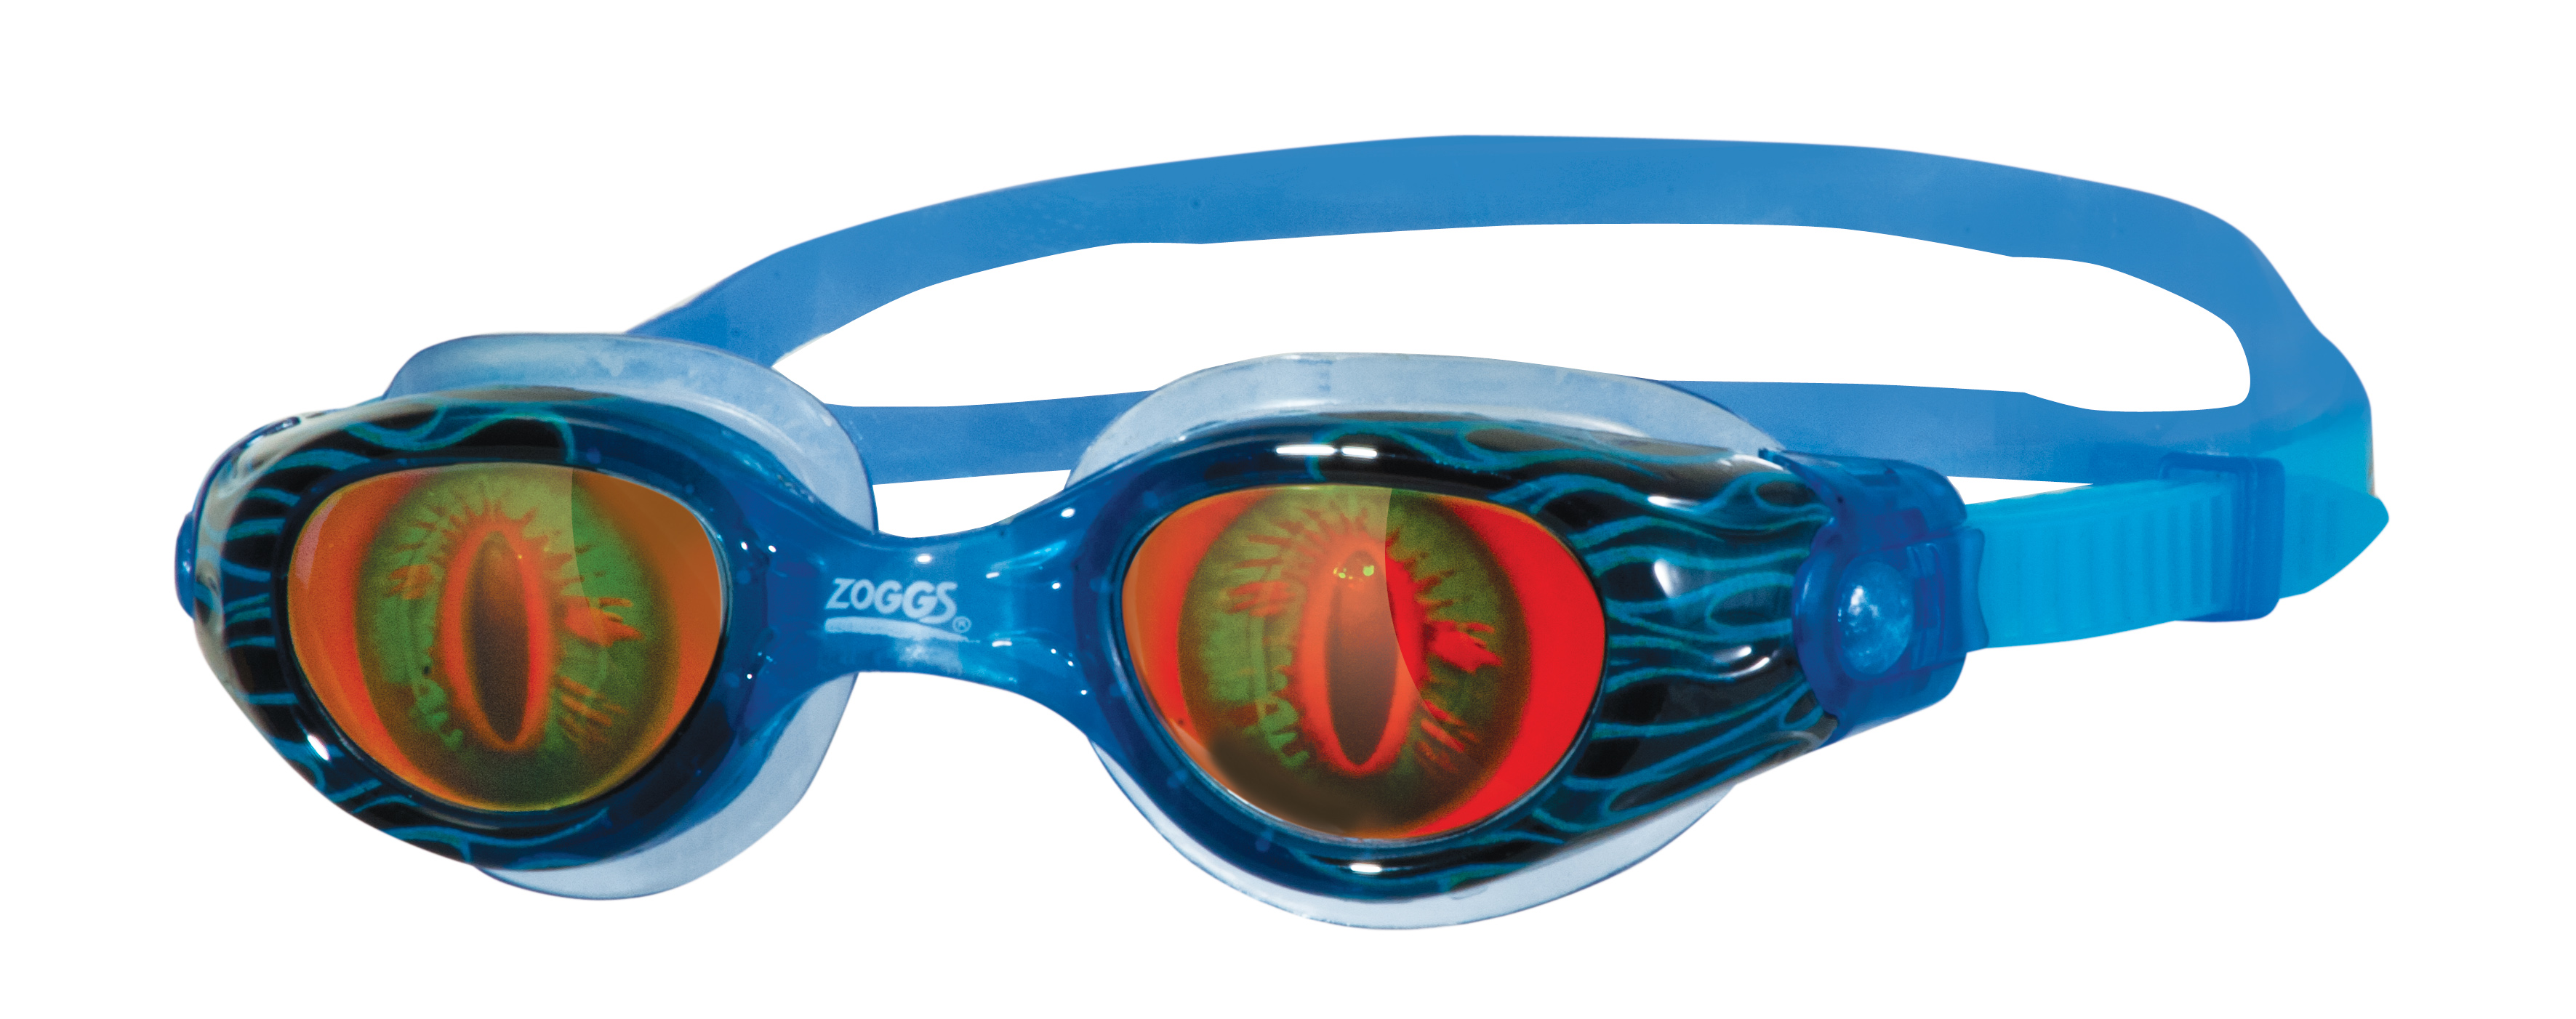 swimming goggles that fit over glasses eeot  swimming goggles that fit over glasses